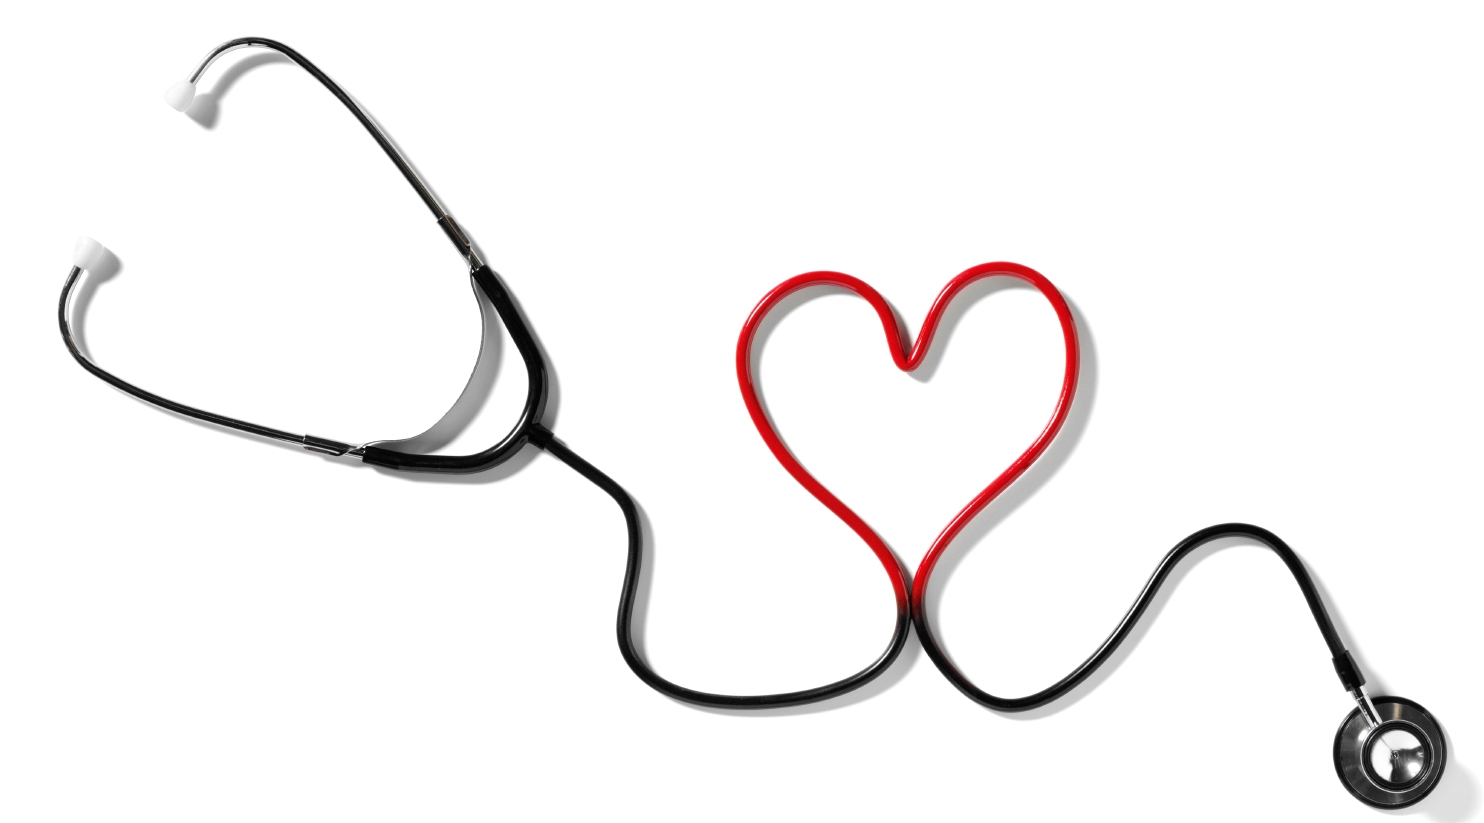 hight resolution of stethoscope clipart image 29661